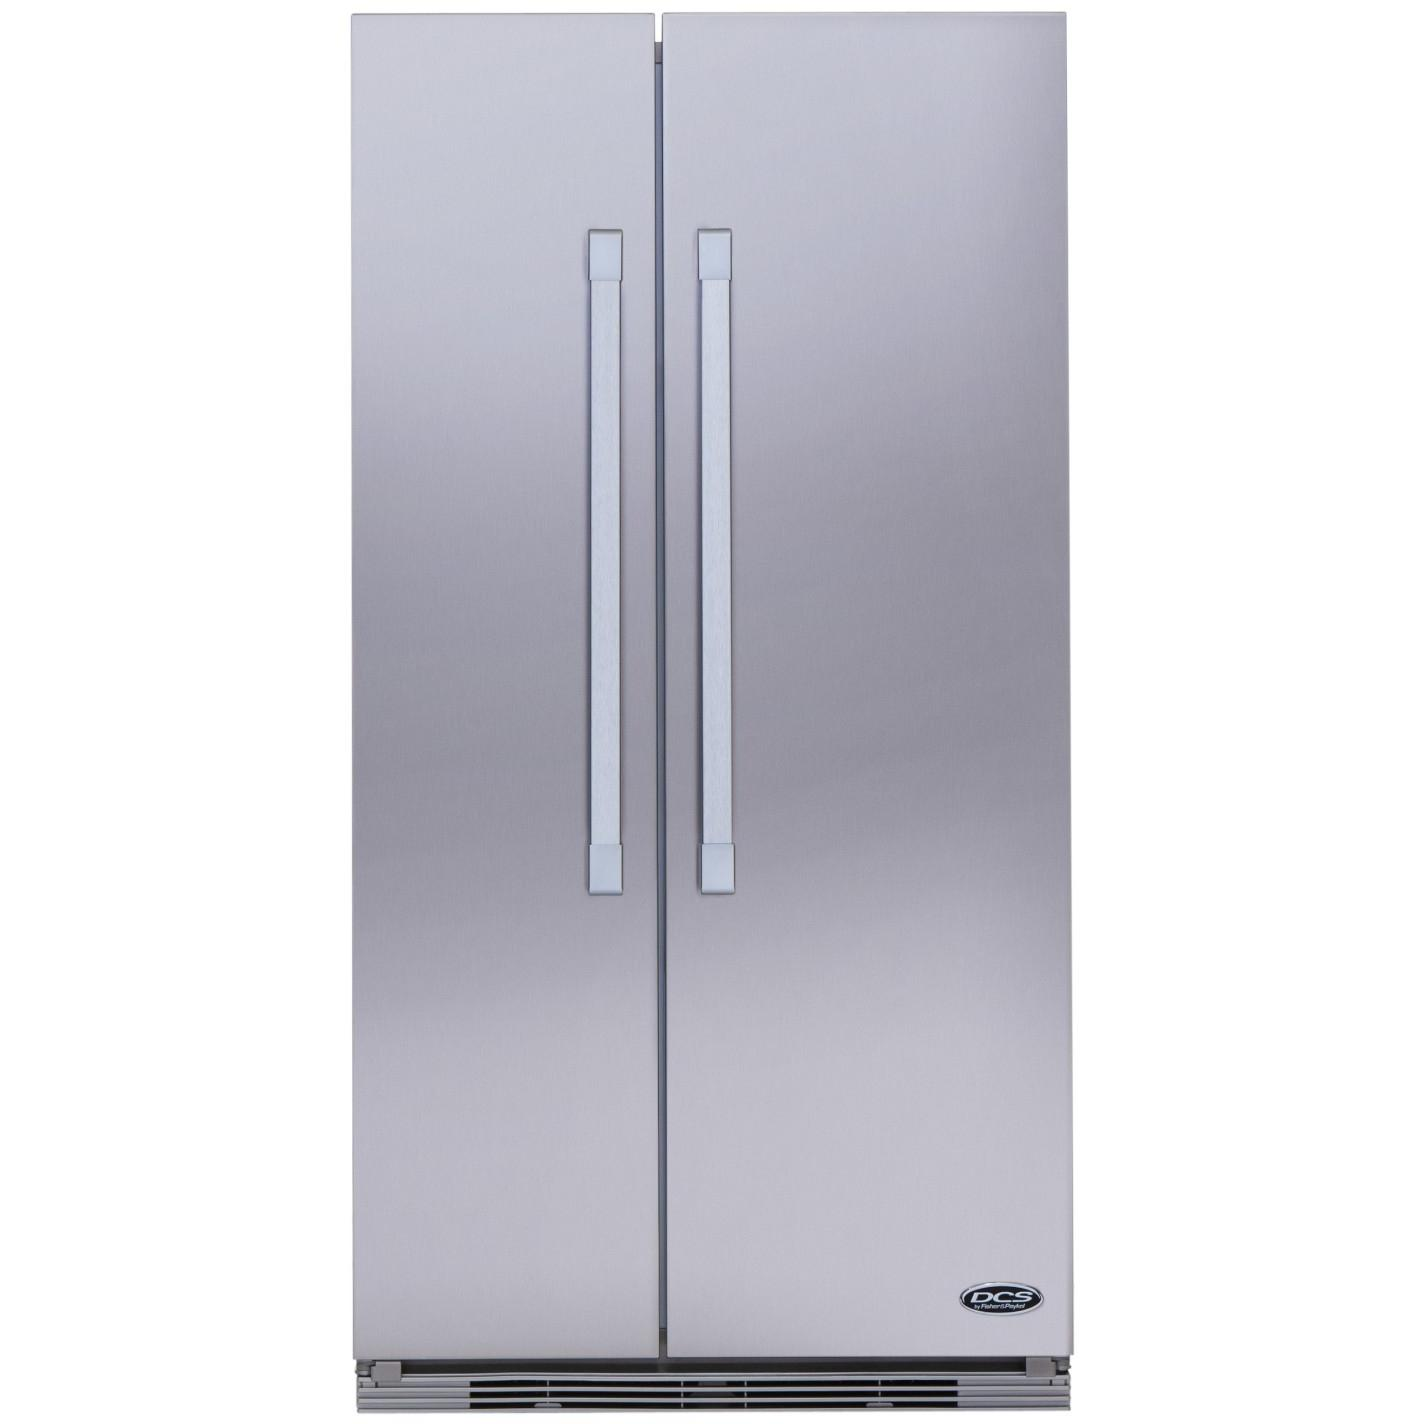 DCS RX215UJX1 21.5 Cu. Ft. Side-by-Side Refrigerator - Stainless Steel